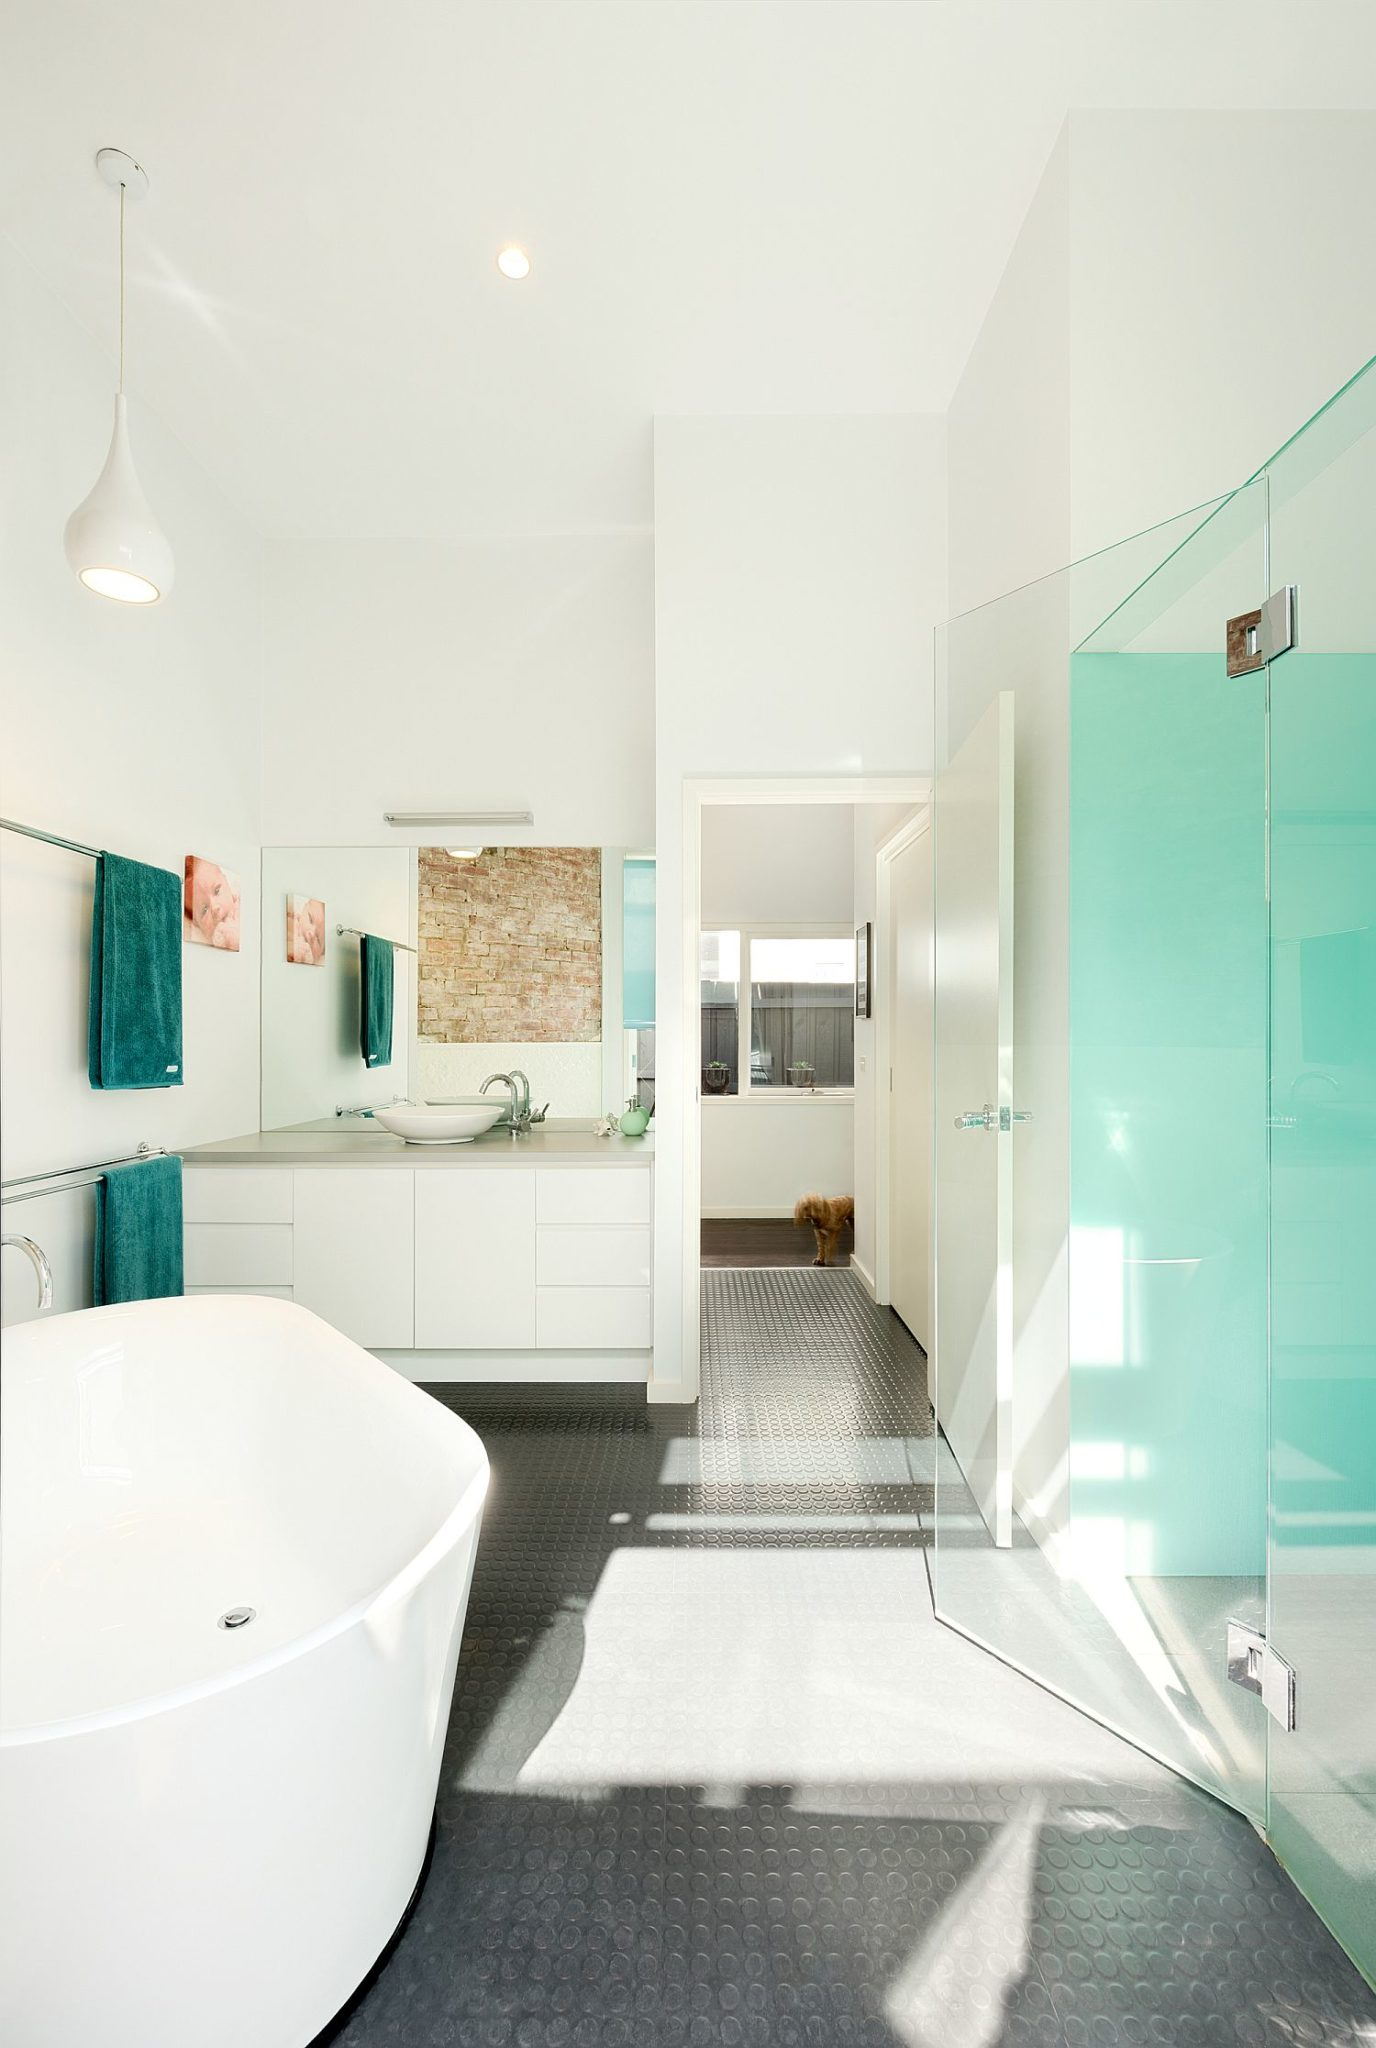 Gorgeous contemporary bathroom with non-slip floor and white walls